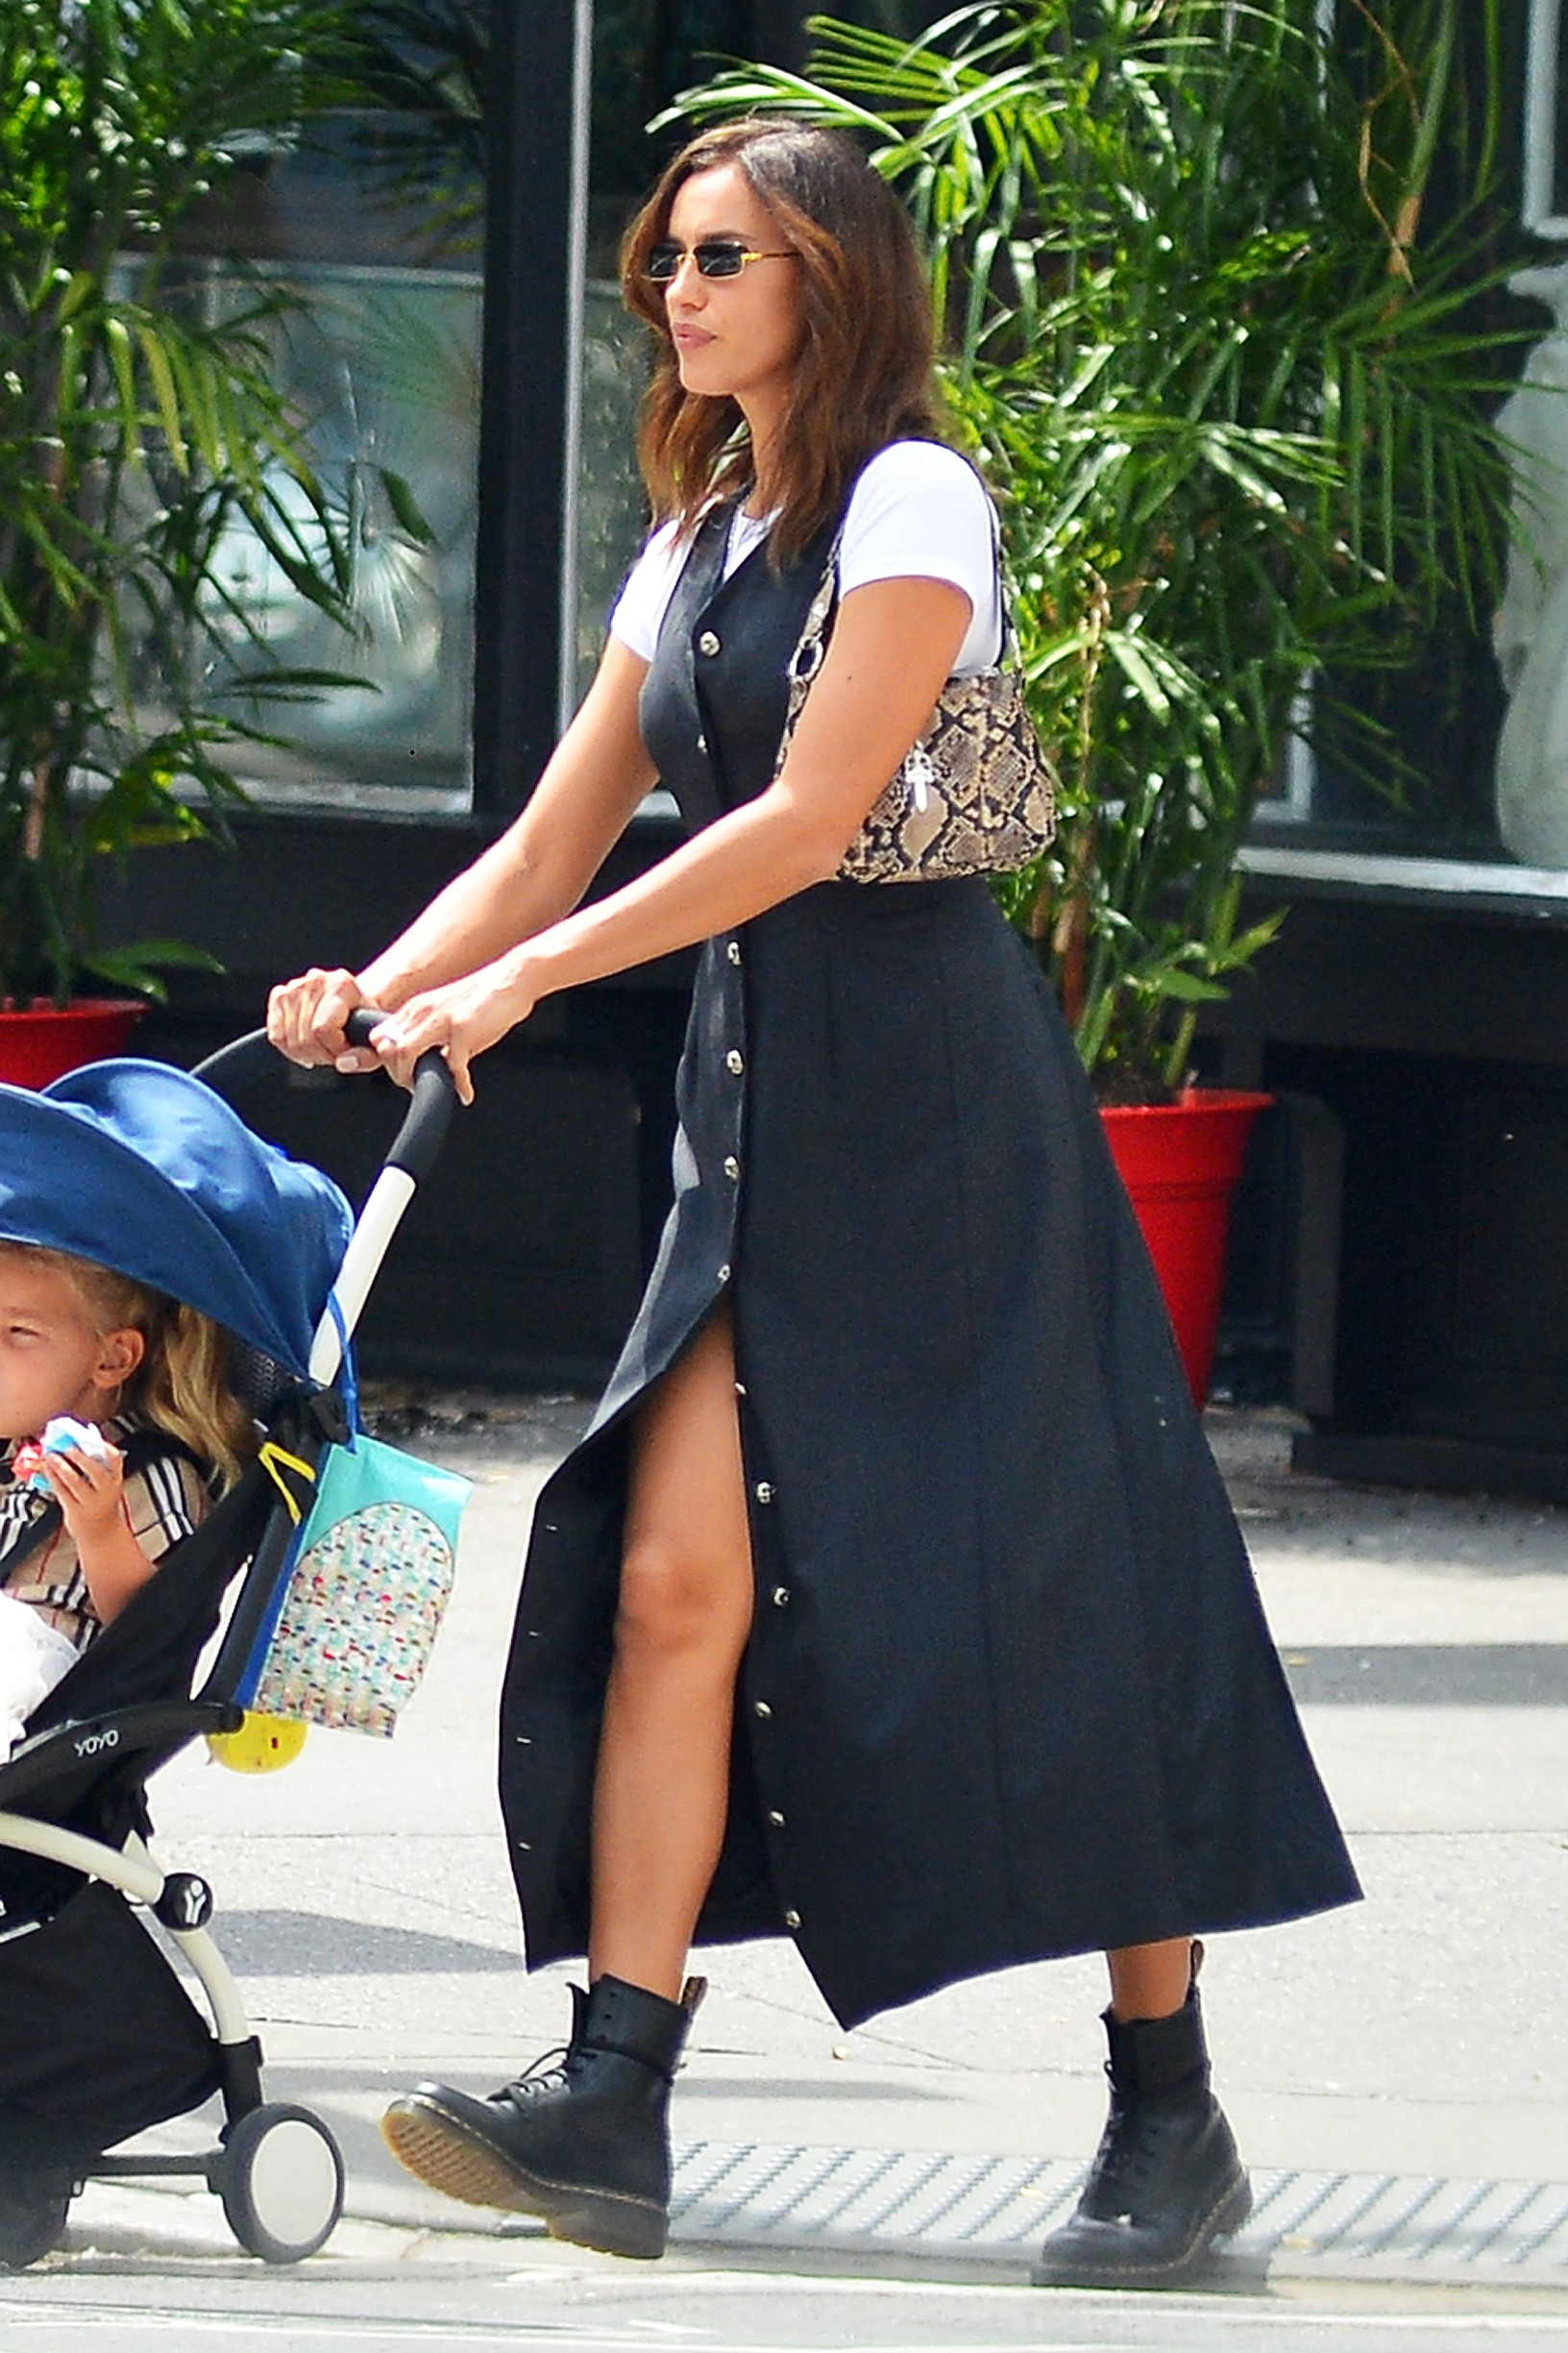 08/21/2020 EXCLUSIVE: Irina Shayk Steps Out With Her Daughter in New York City. The 34 year old model looked casual in a long black dress over a white tee shirt and black Doc Marten boots,Image: 554486327, License: Rights-managed, Restrictions: Exclusive NO usage without agreed price and terms. Please contact sales@theimagedirect.com, Model Release: no, Credit line: TheImageDirect.com / The Image Direct / Profimedia